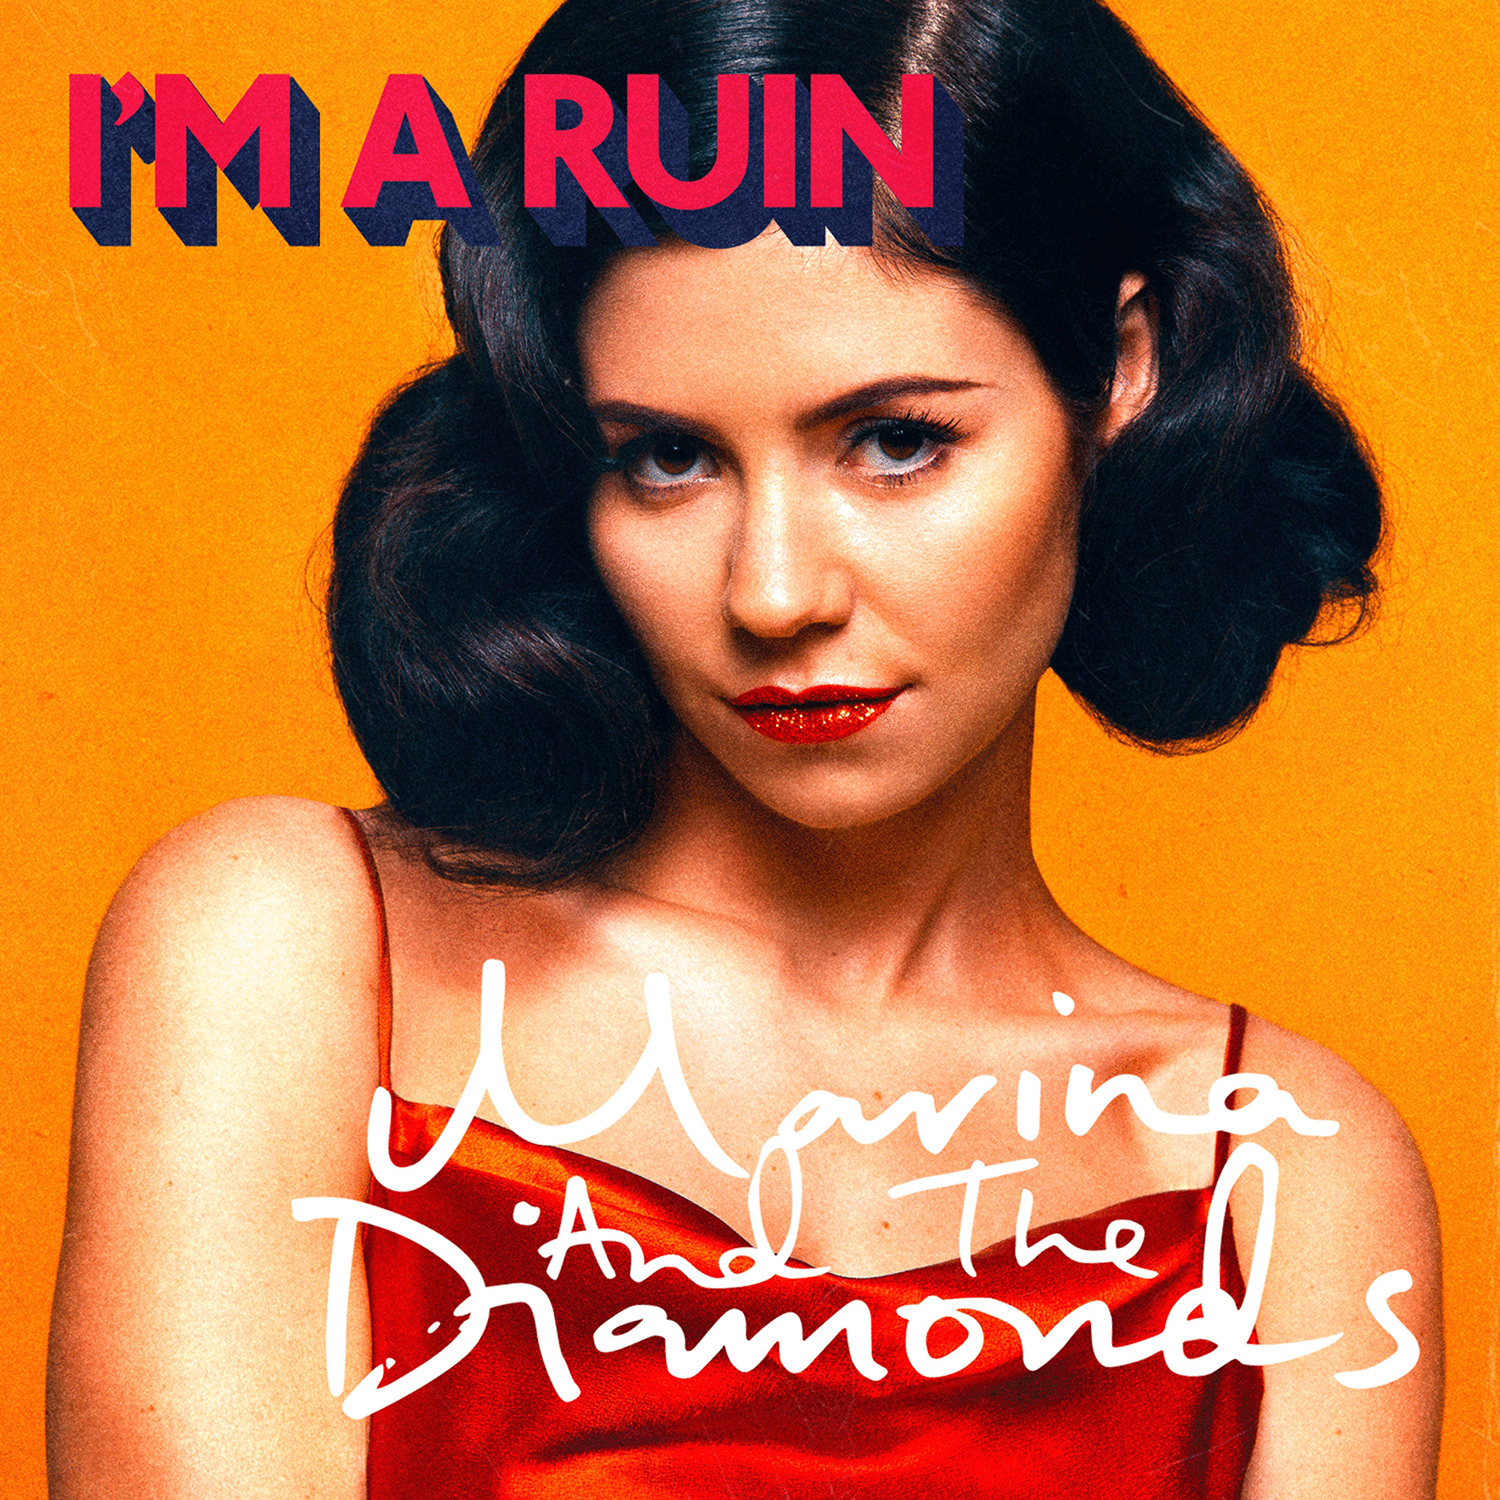 I\'m a Ruin | Marina and the Diamonds Wiki | FANDOM powered by Wikia